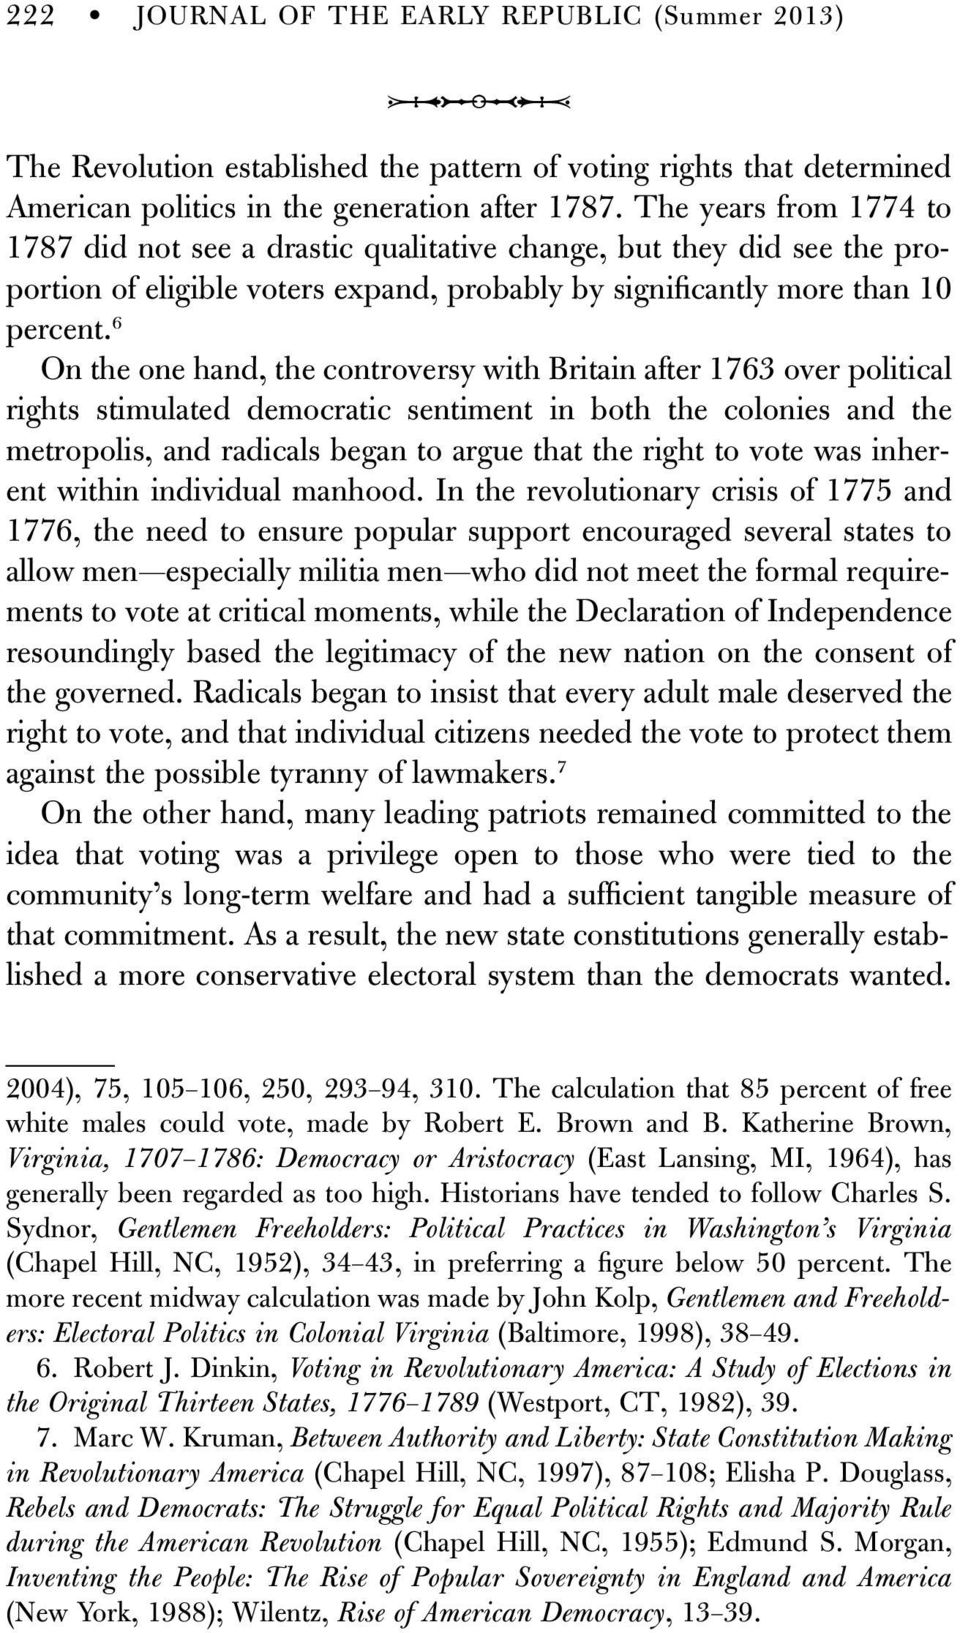 6 On the one hand, the controversy with Britain after 1763 over political rights stimulated democratic sentiment in both the colonies and the metropolis, and radicals began to argue that the right to